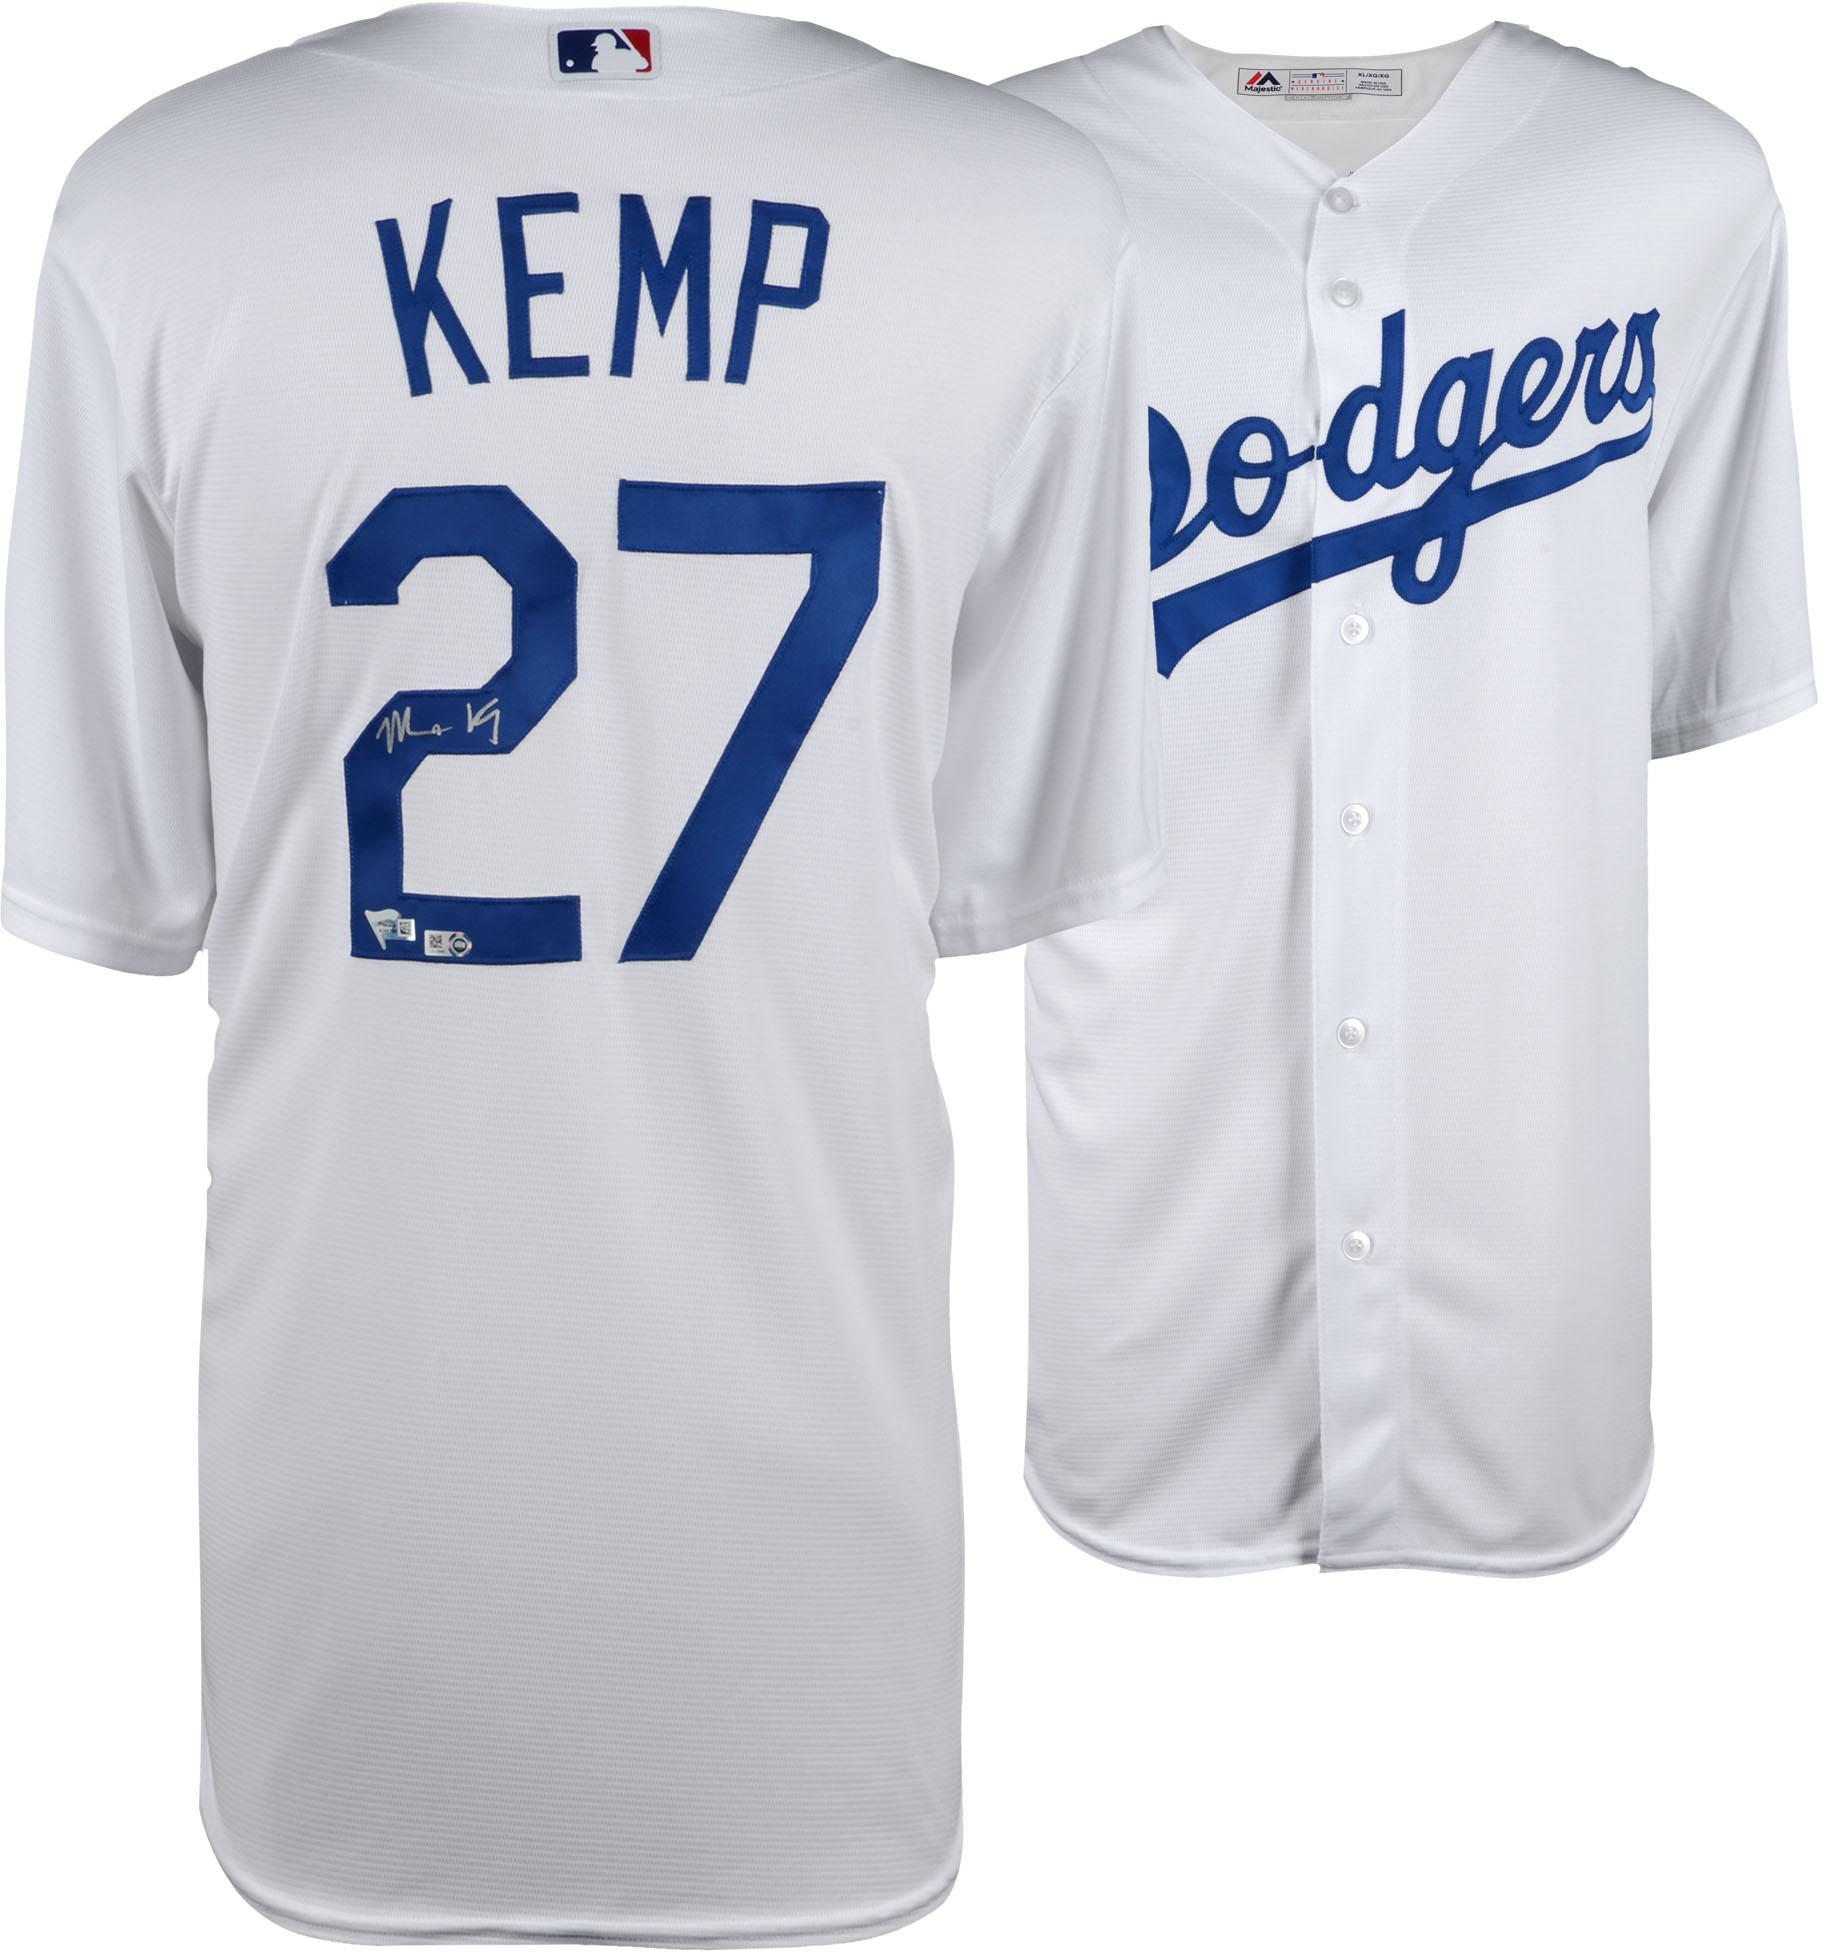 Matt Kemp Los Angeles Dodgers Autographed Majestic White Replica Jersey - Fanatics Authentic Certified